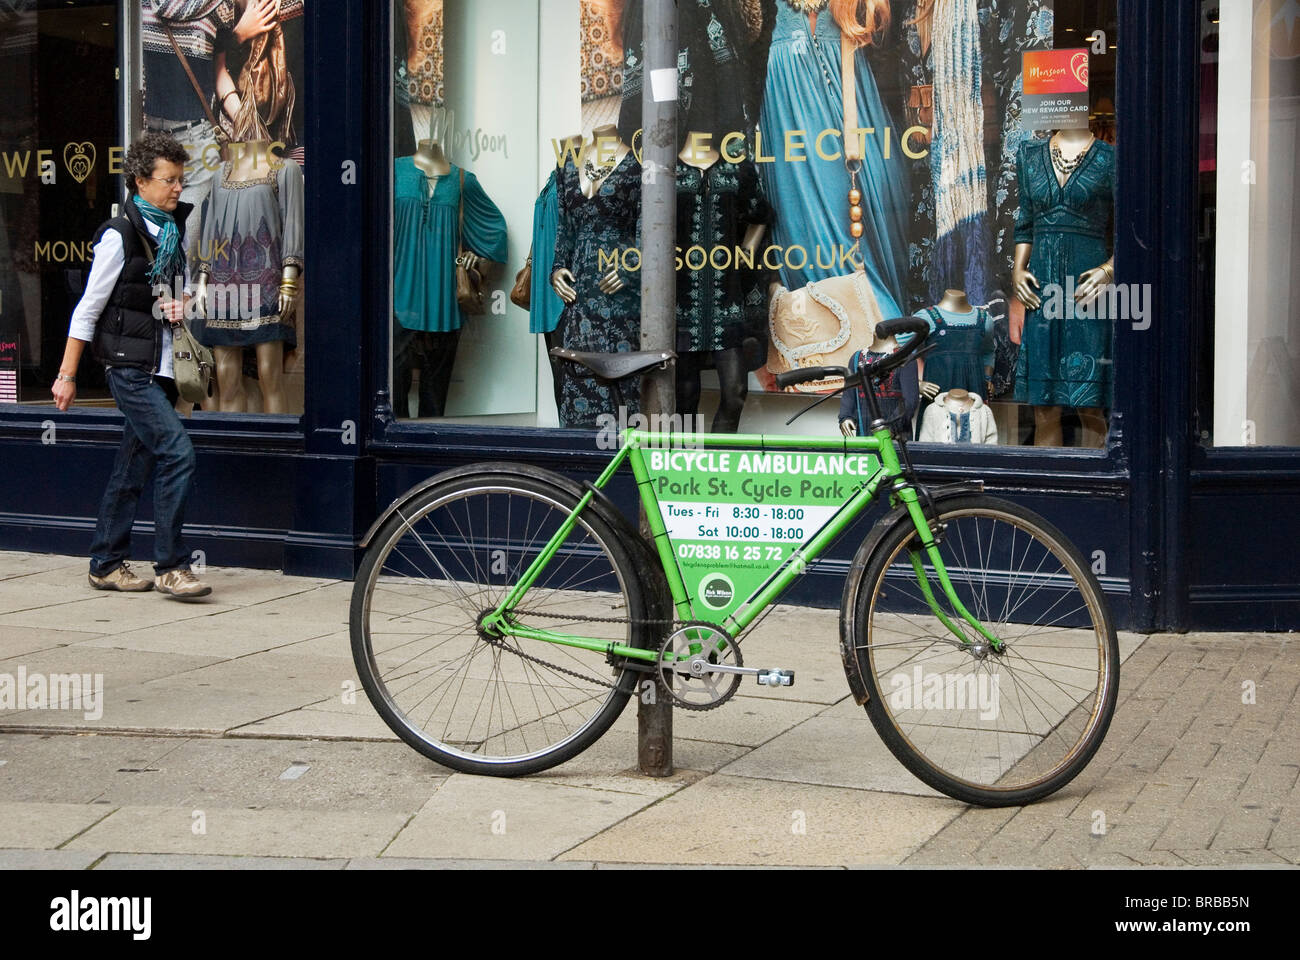 A bicycle being used to advertise the 'Bicycle Ambulance' cycle repair service parked on a busy shopping - Stock Image